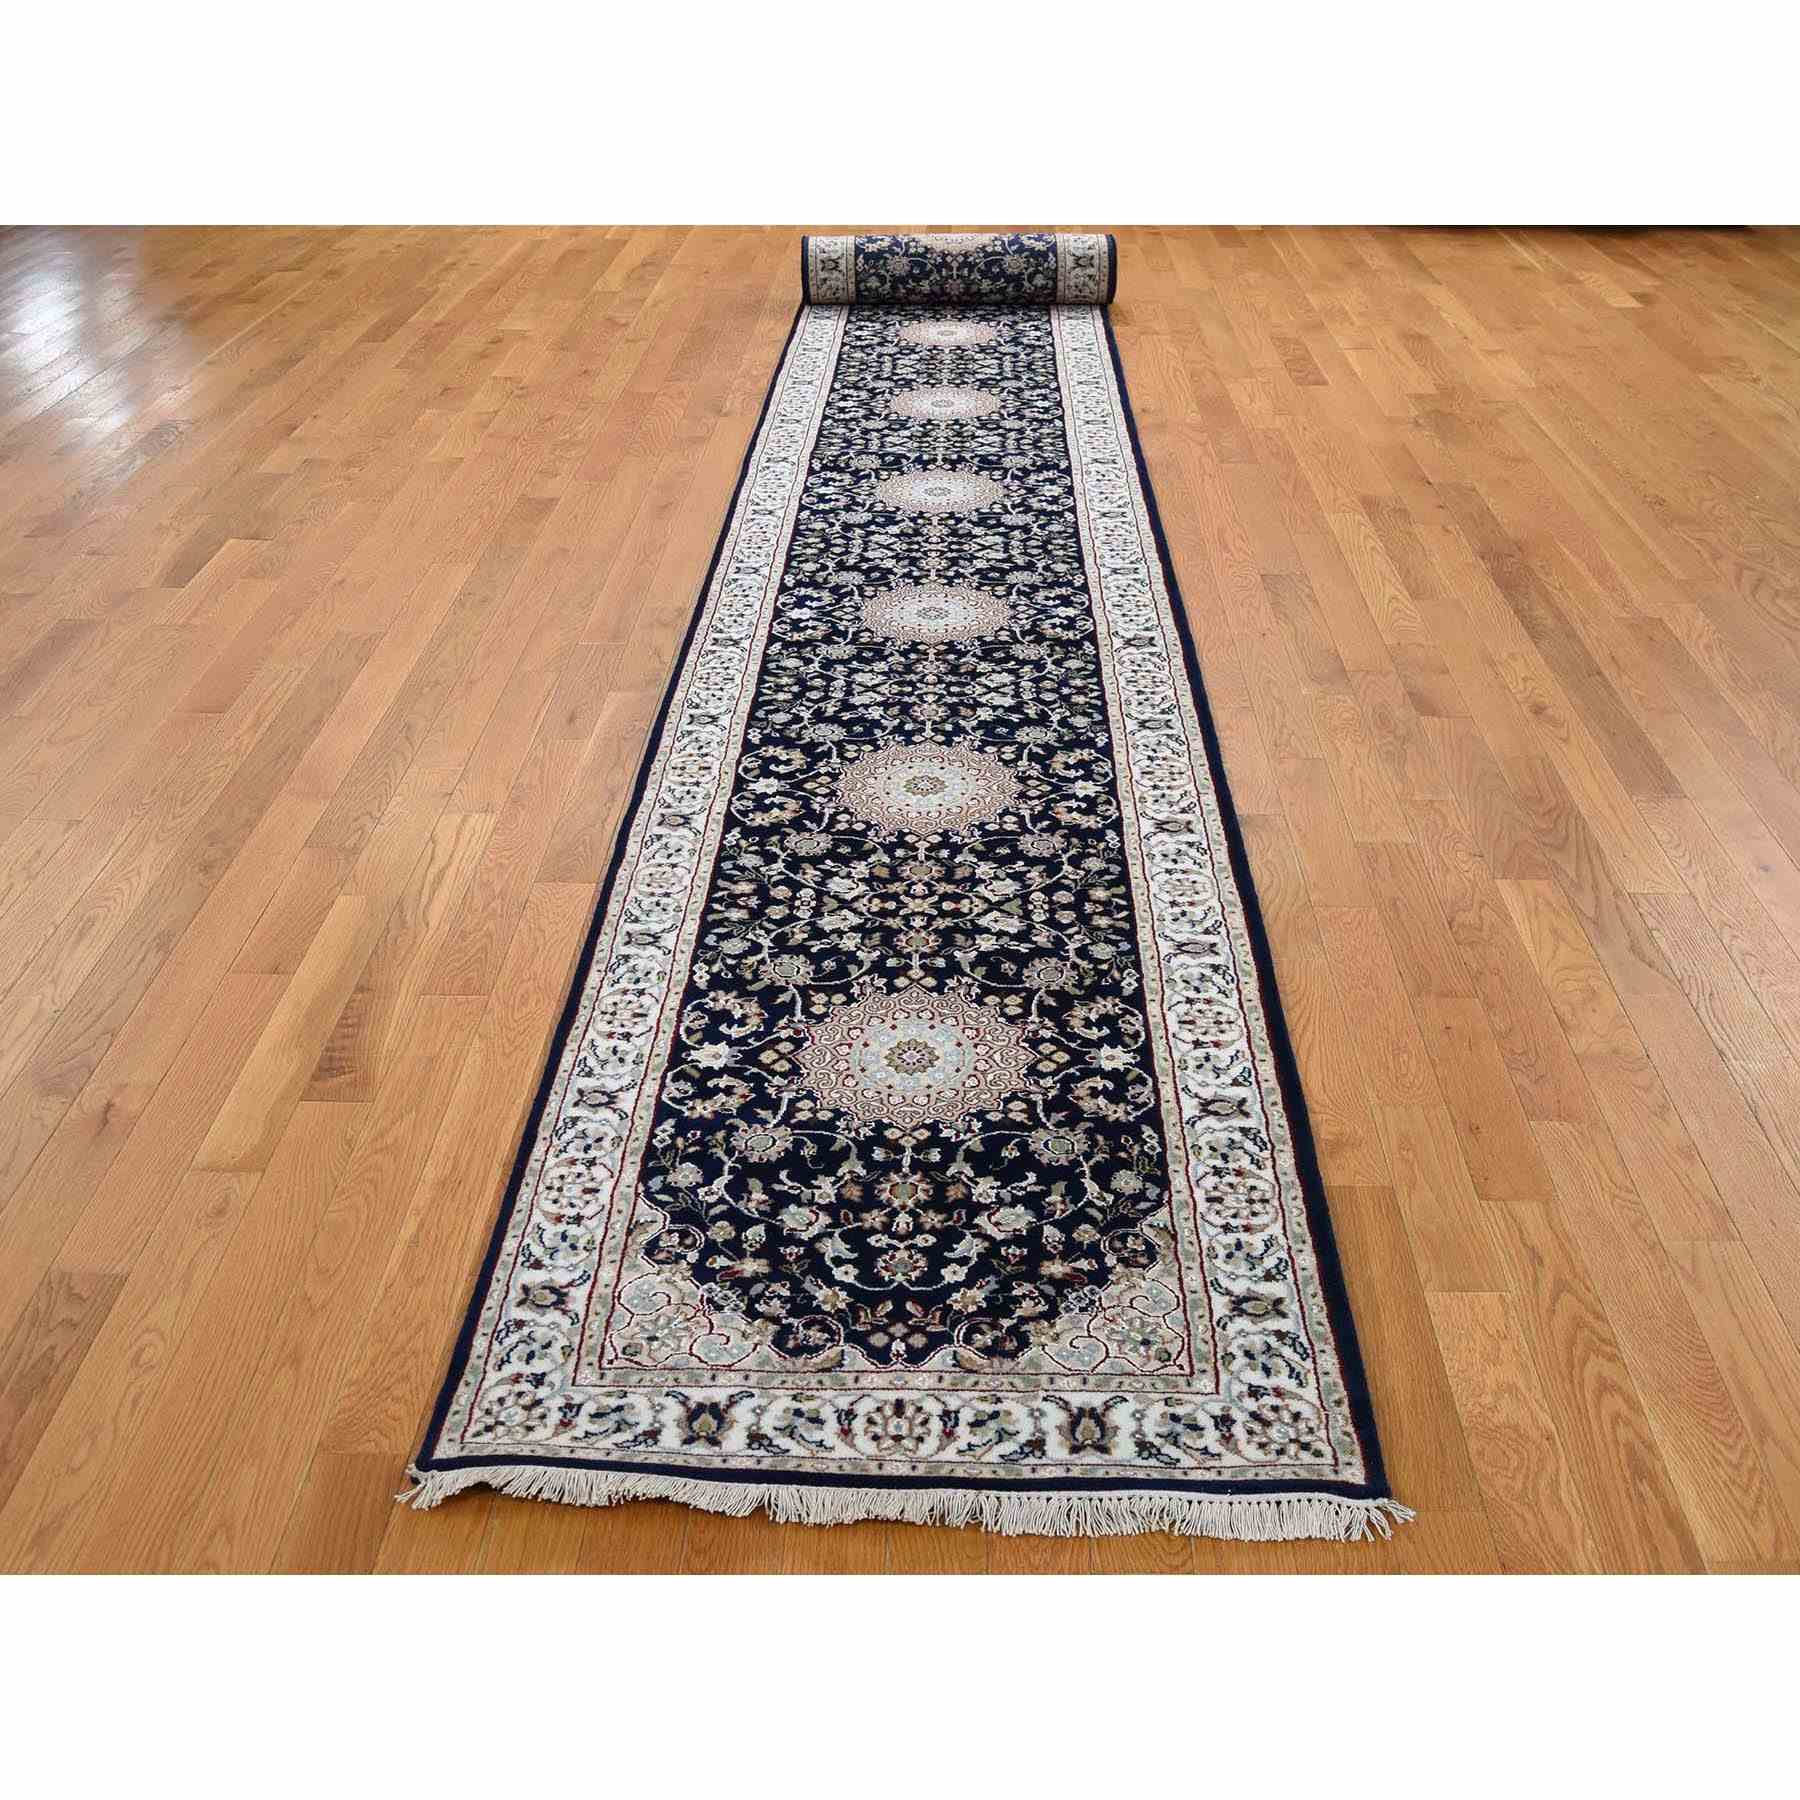 Fine-Oriental-Hand-Knotted-Rug-297035